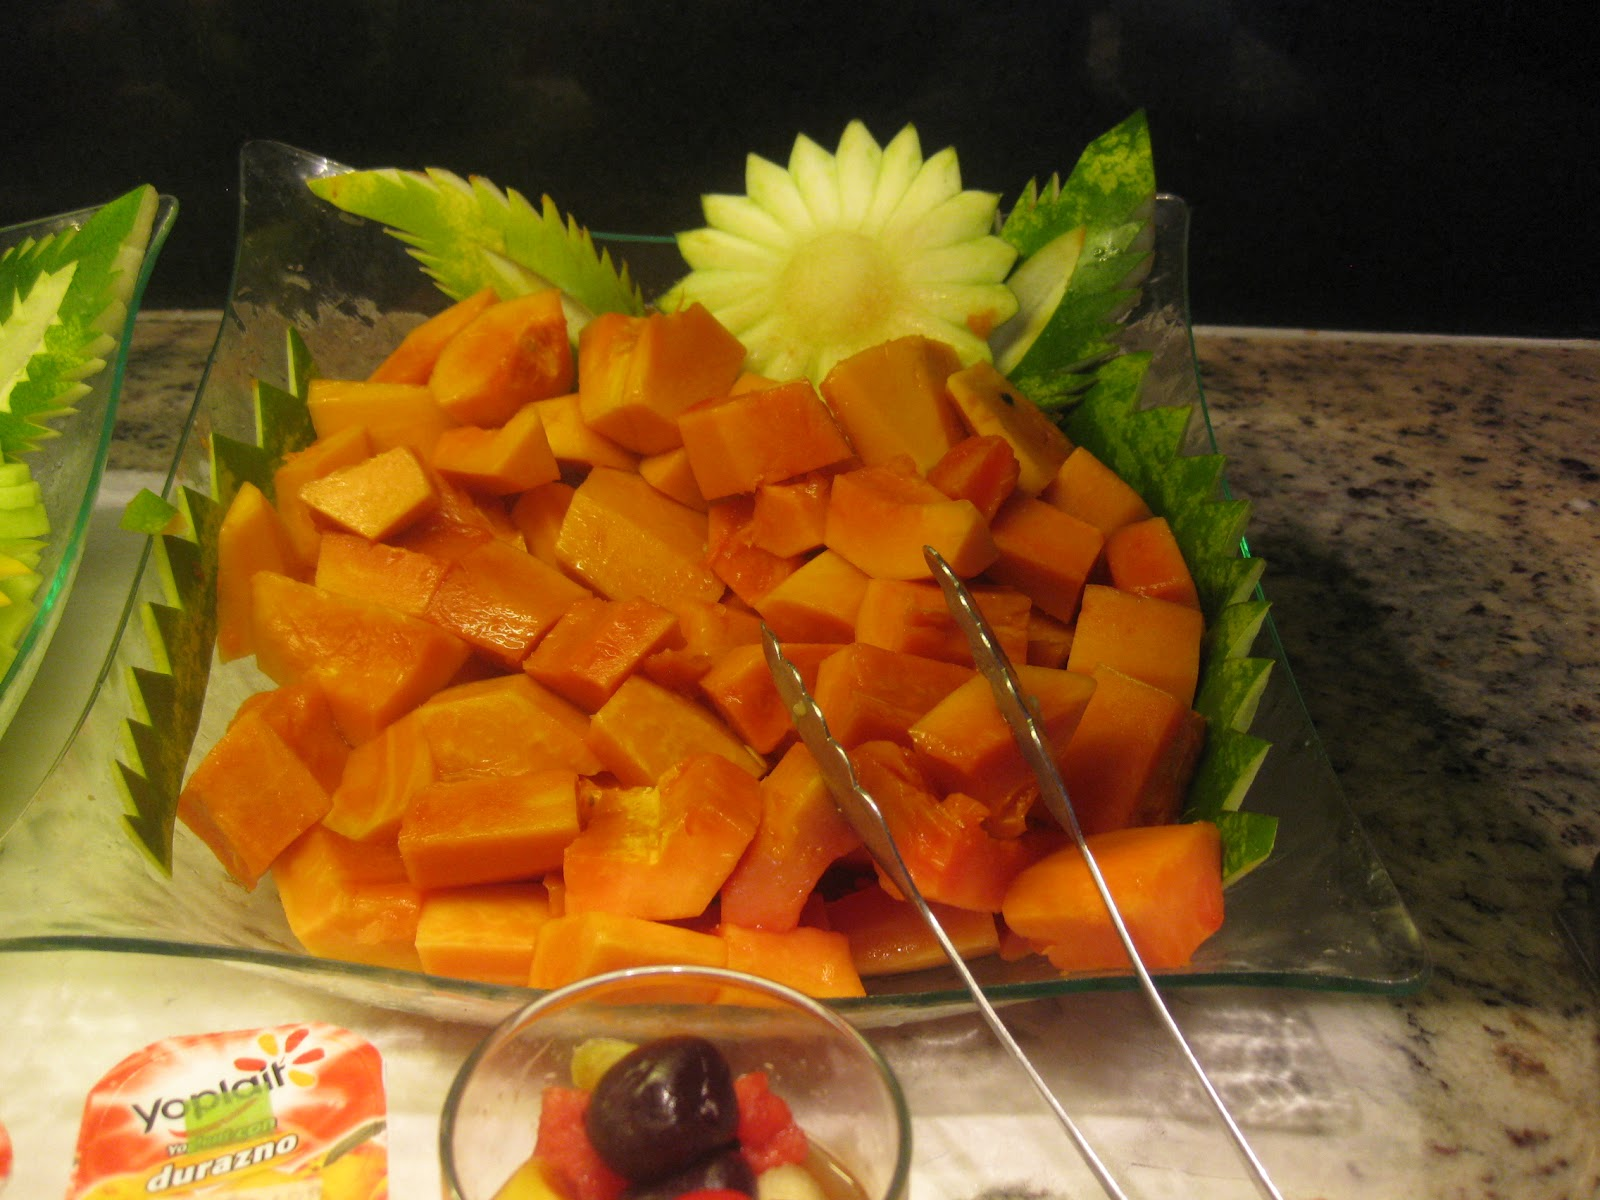 bowl of cut up papaya